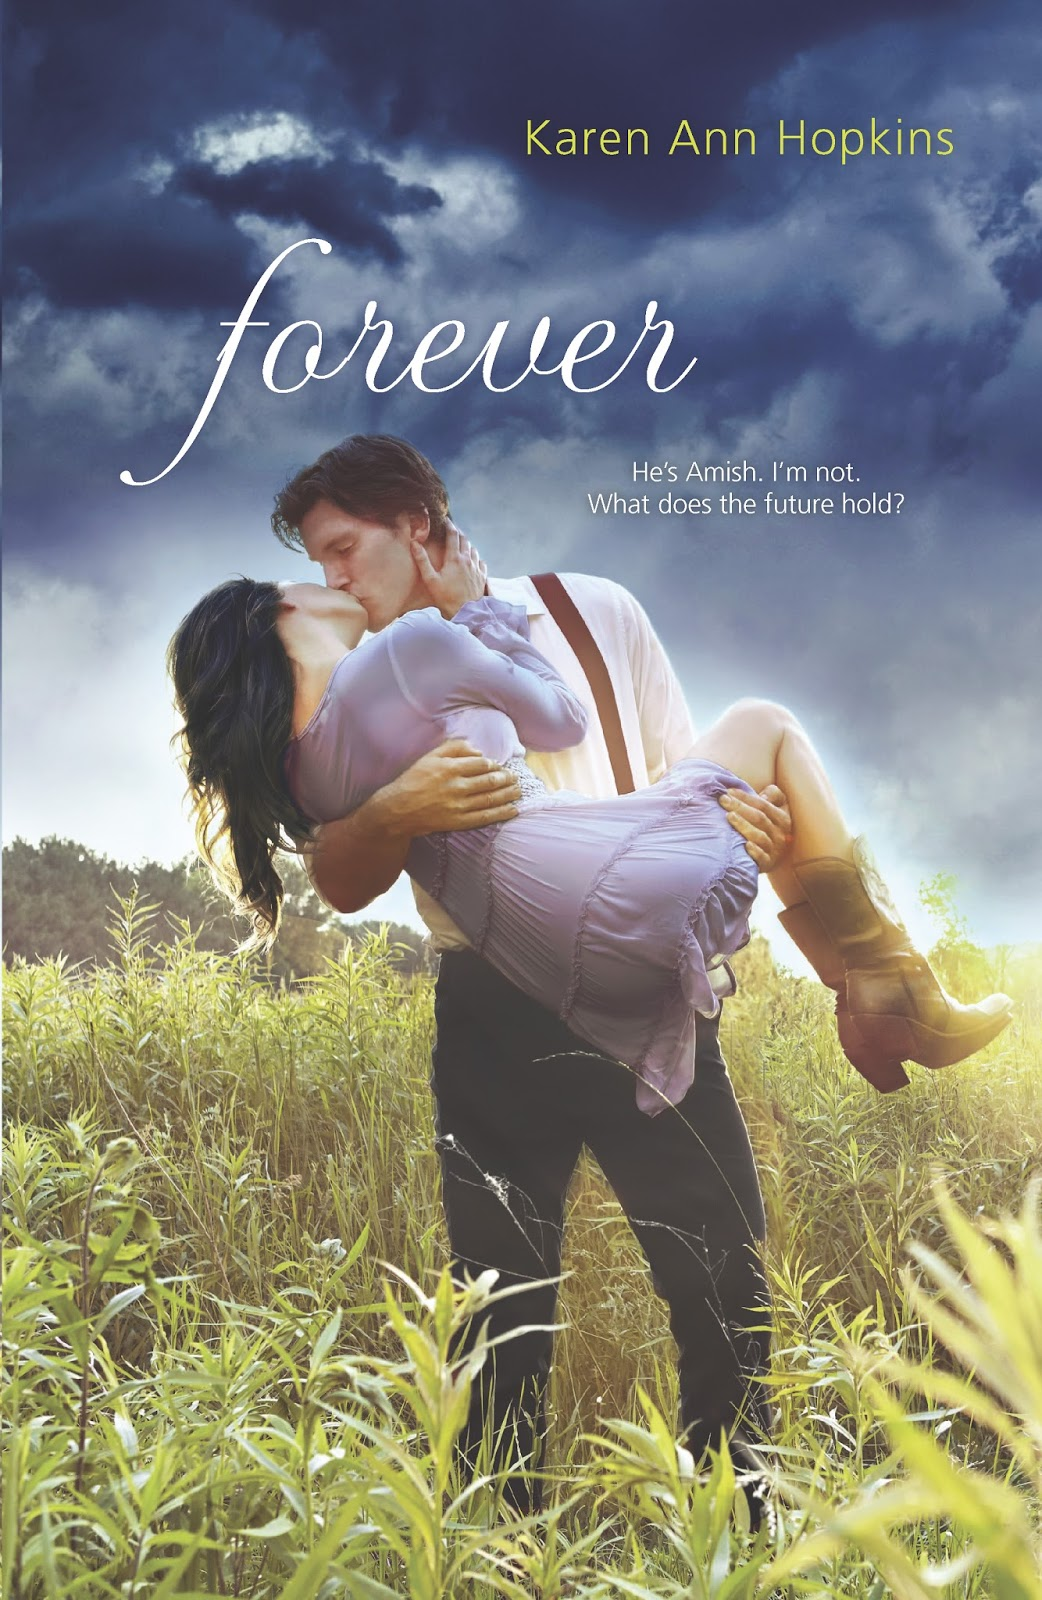 http://www.amazon.com/Forever-Temptation-Novel-Karen-Hopkins-ebook/dp/B00EFPNZ1C/ref=sr_1_1?s=digital-text&ie=UTF8&qid=1402694032&sr=1-1&keywords=forever+karen+ann+hopkins